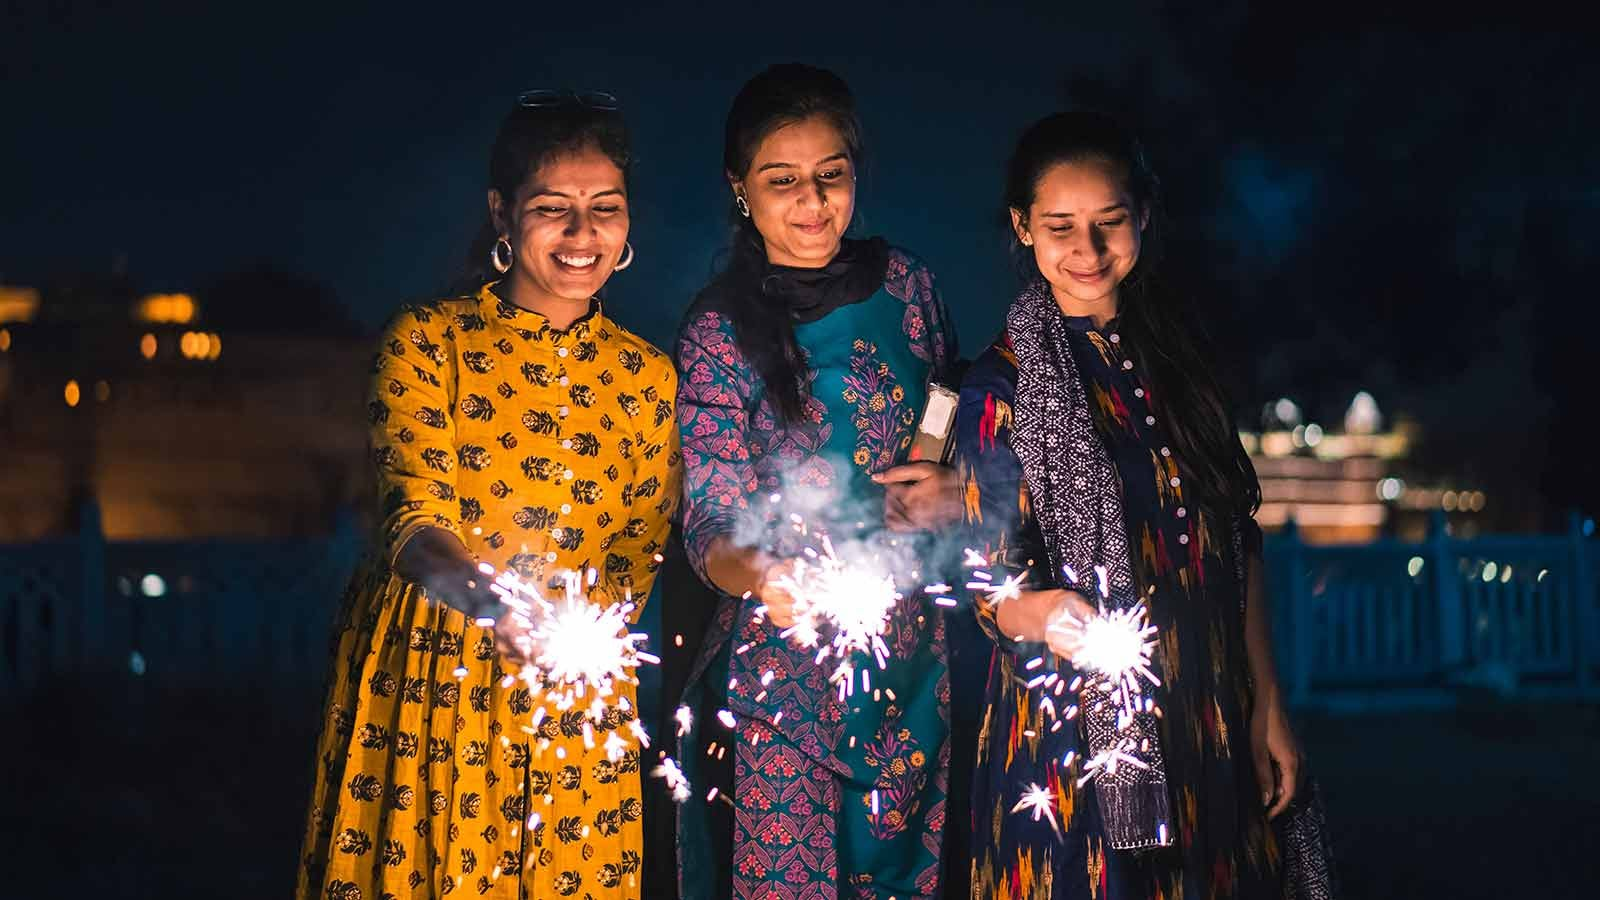 Indian women holding sparklers as they celebrate Diwali